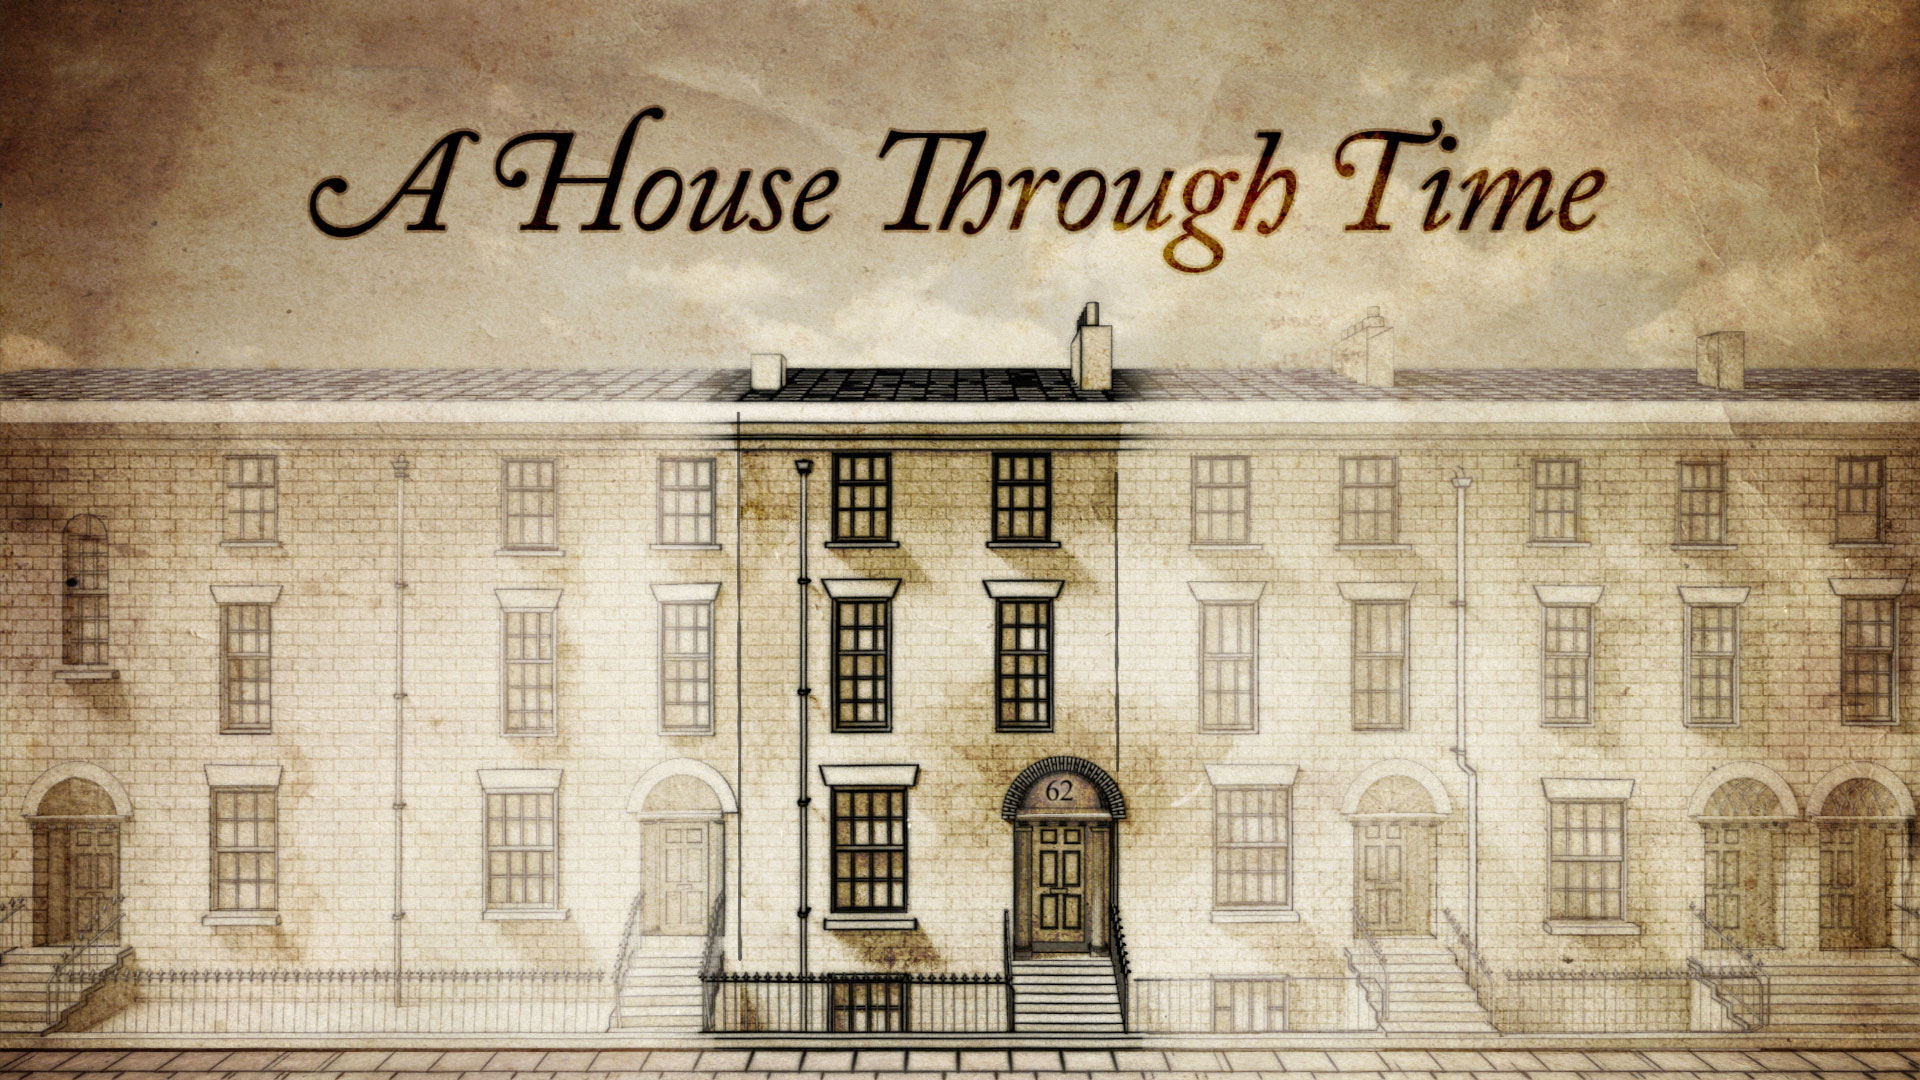 A House Through Time © Holey & Moley Ltd